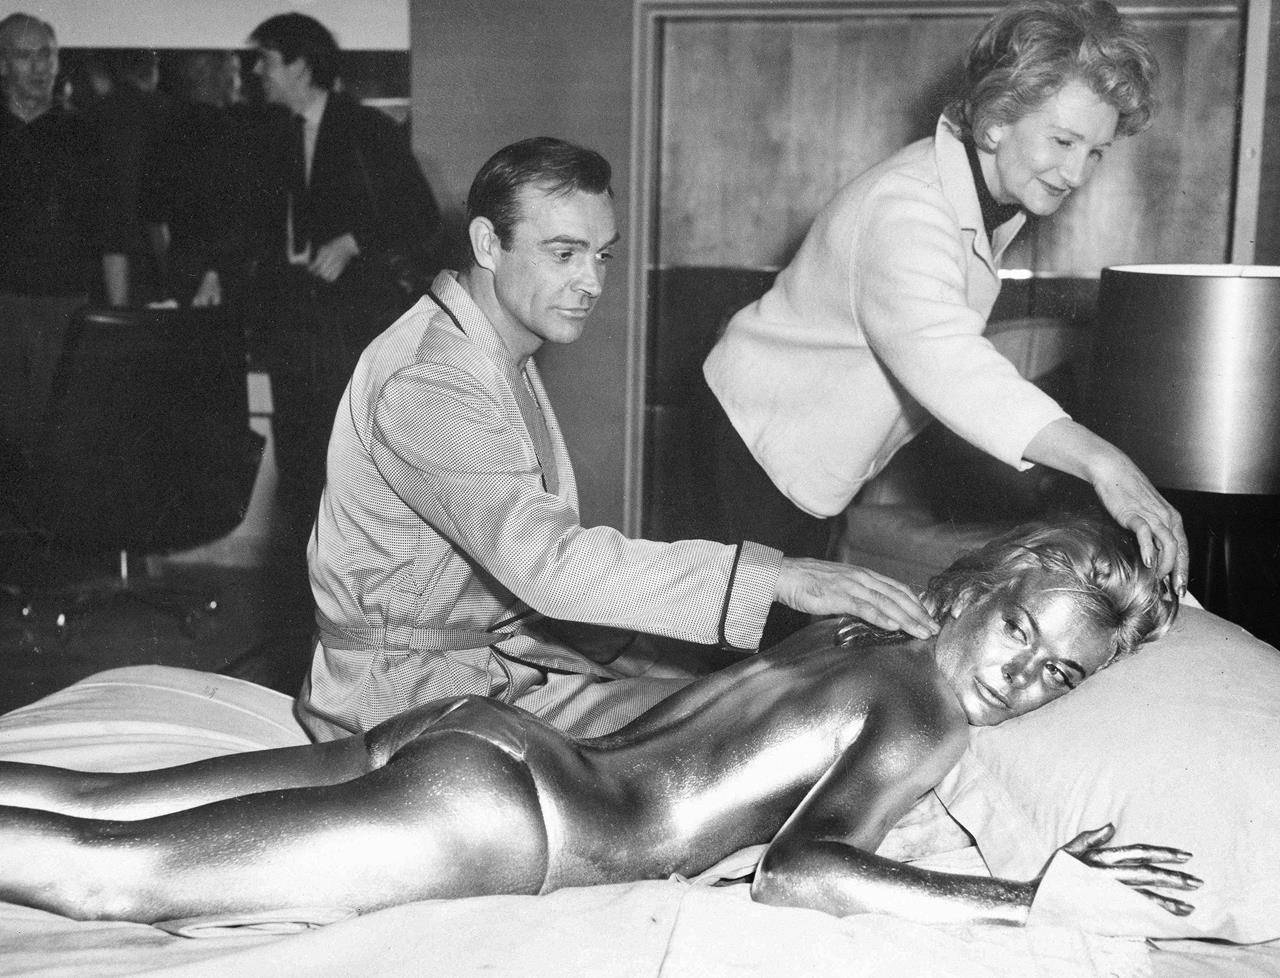 """FILE - In this file photo dated April 20, 1964, James Bond, alias, Sean Connery, finds himself in a sticky situation with actress Shirley Eaton at Pinewood Studios, near London. Miss Eaton was given a liberal coating of gold paint for a scene in the latest Bond thriller """"Goldfinger,"""" with unidentified woman at top. Scottish actor Sean Connery, considered by many to have been the best James Bond, has died aged 90, according to an announcement from his family. (AP Photo/Victor Boynton)"""